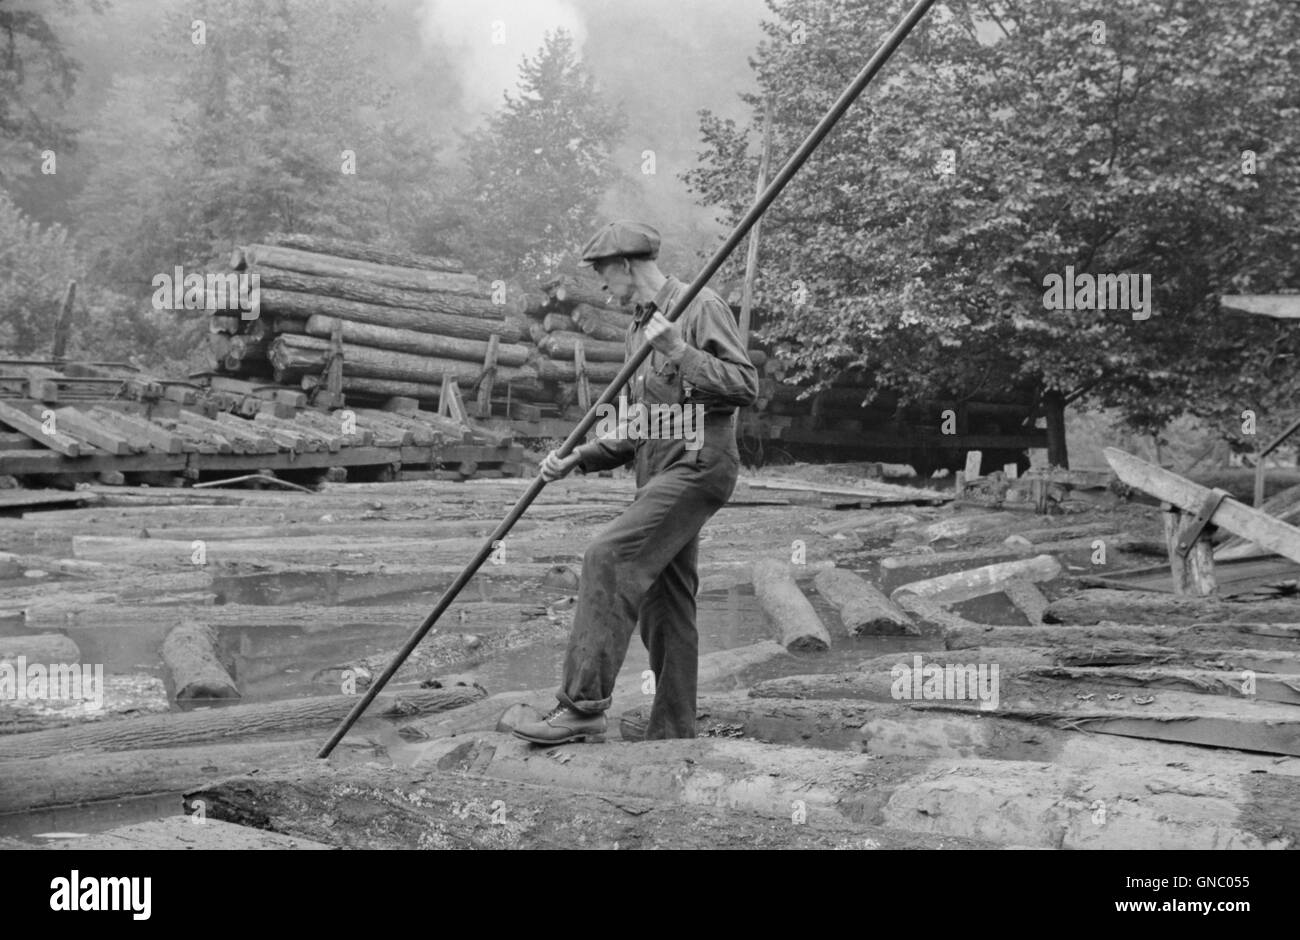 Logger Black and White Stock Photos & Images - Alamy